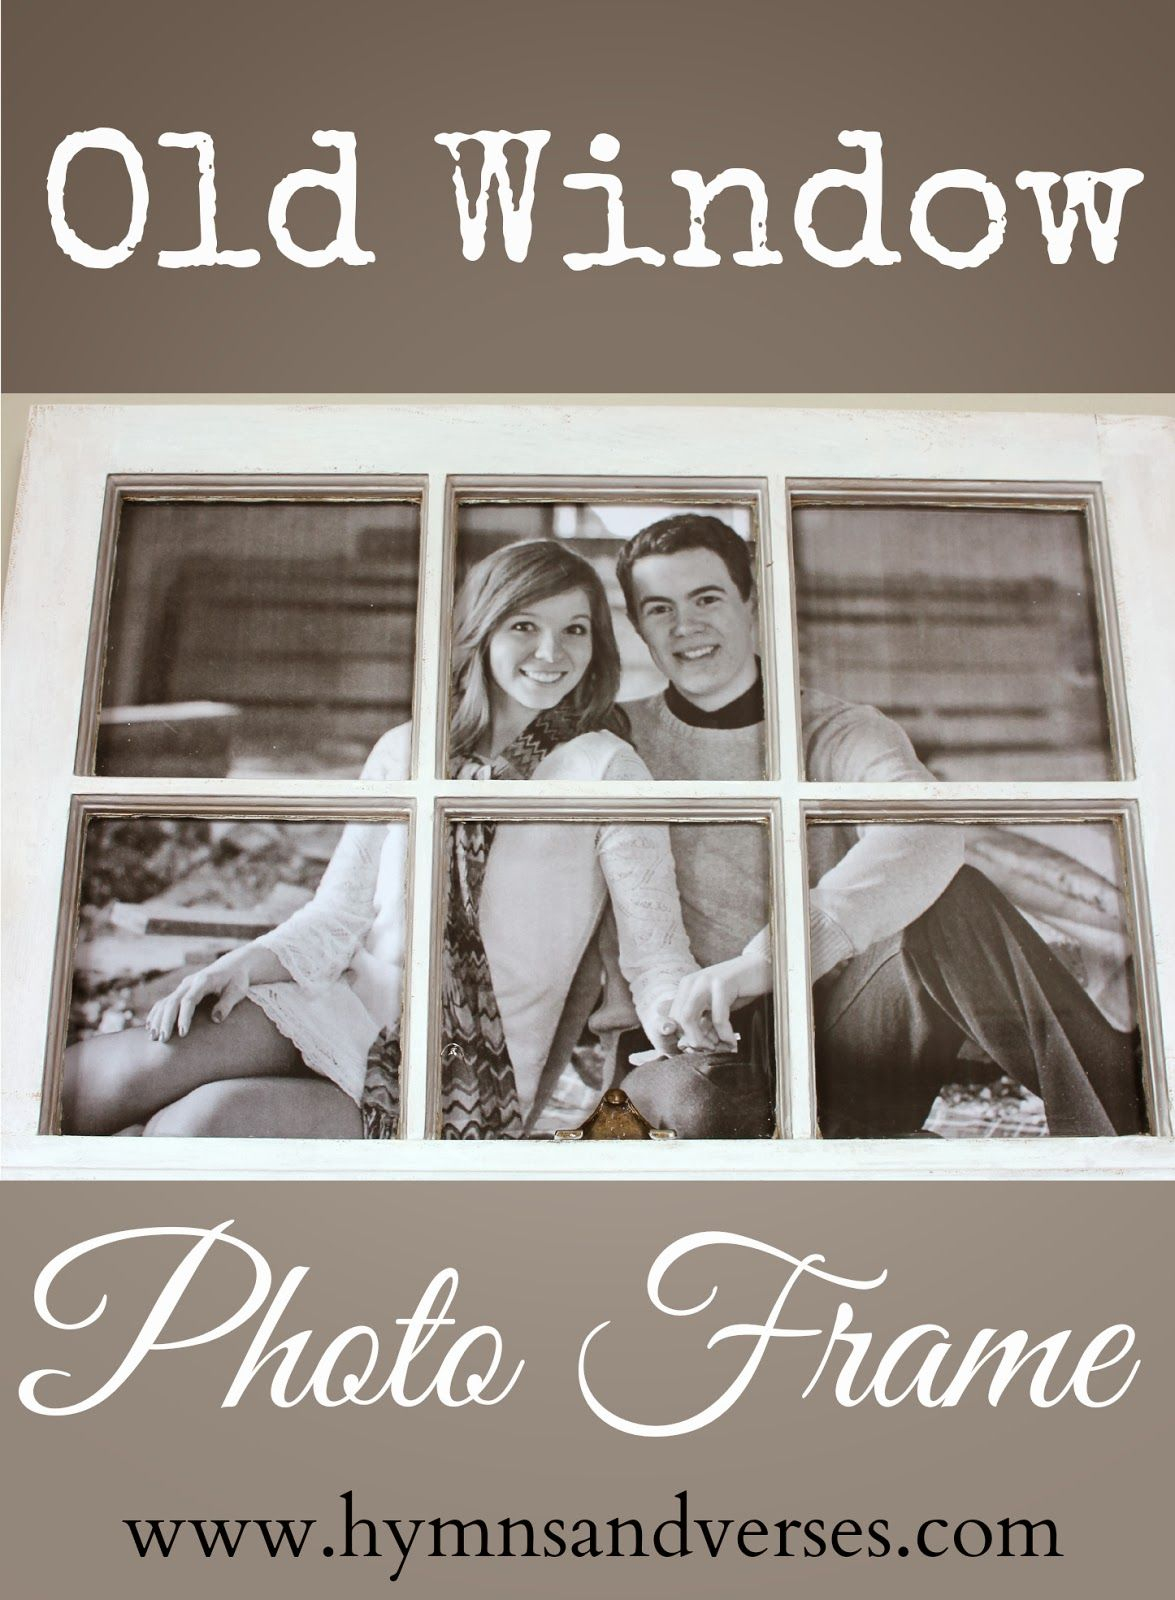 Maison Bricolage Et Décoration How To Make An Old Window Picture Frame Photos